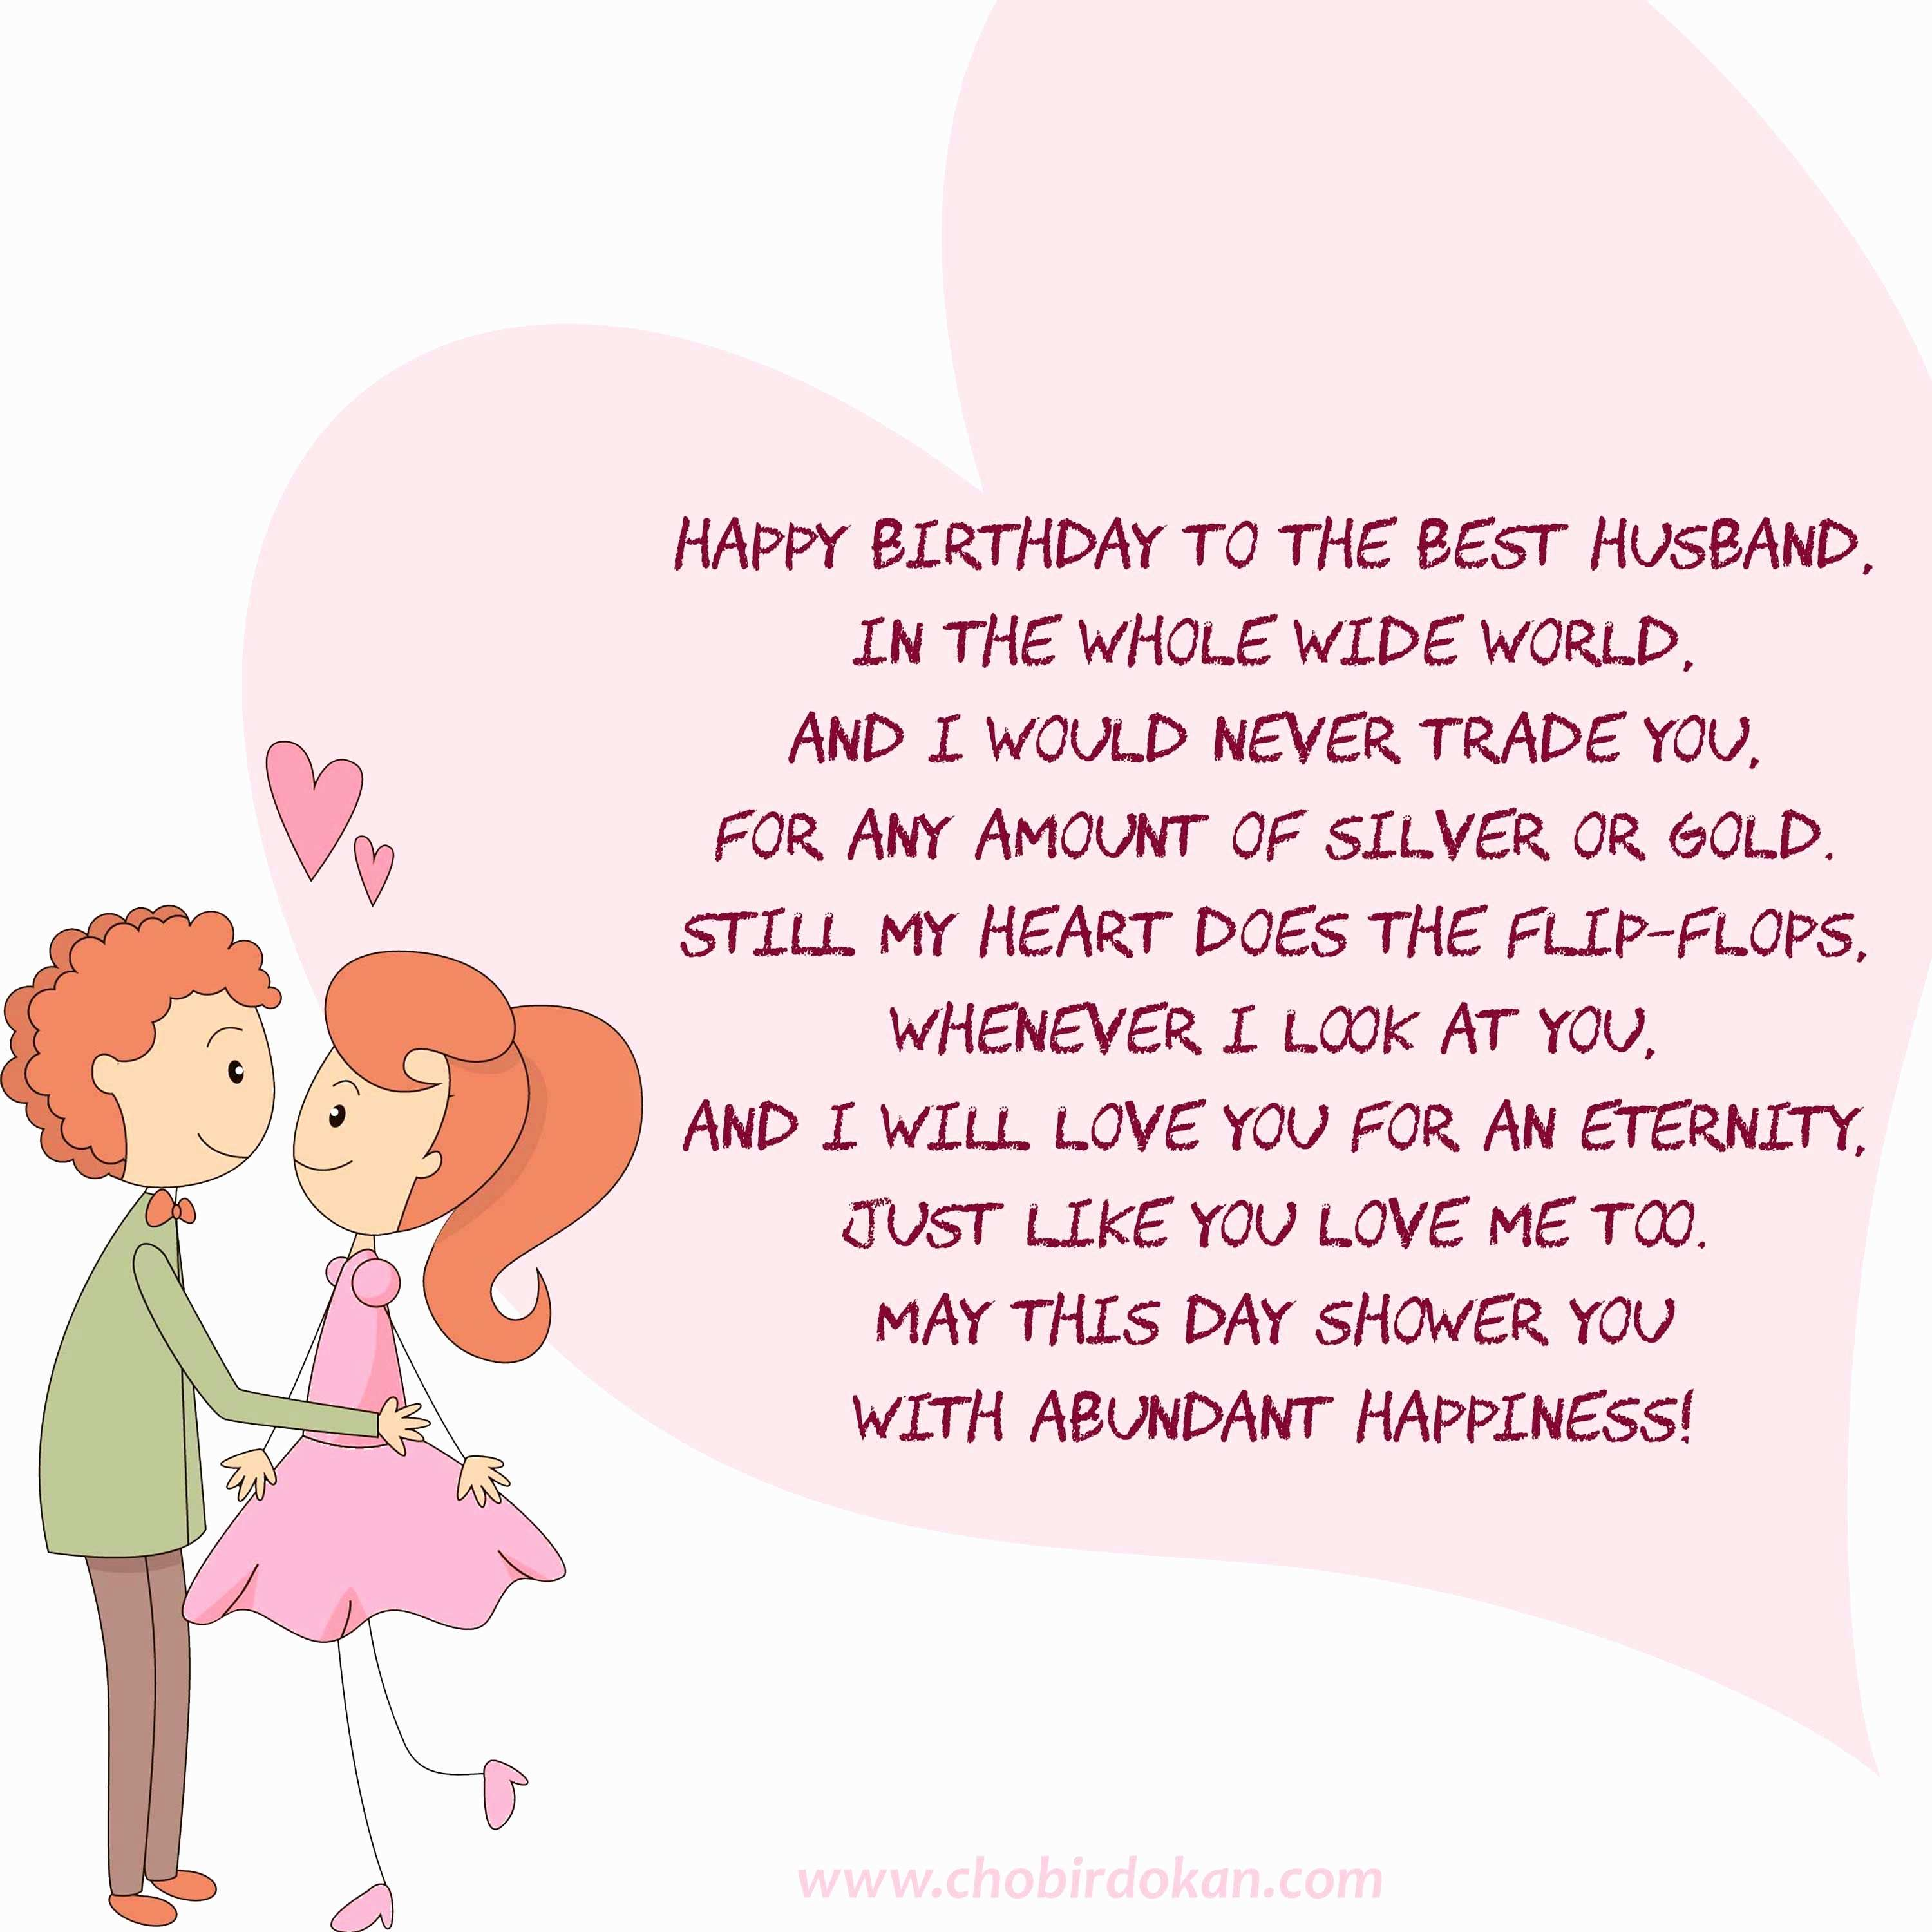 some birthday quotes ; romantic-happy-birthday-quotes-awesome-are-you-looking-for-some-cute-happy-birthday-poems-for-him-wishing-of-romantic-happy-birthday-quotes